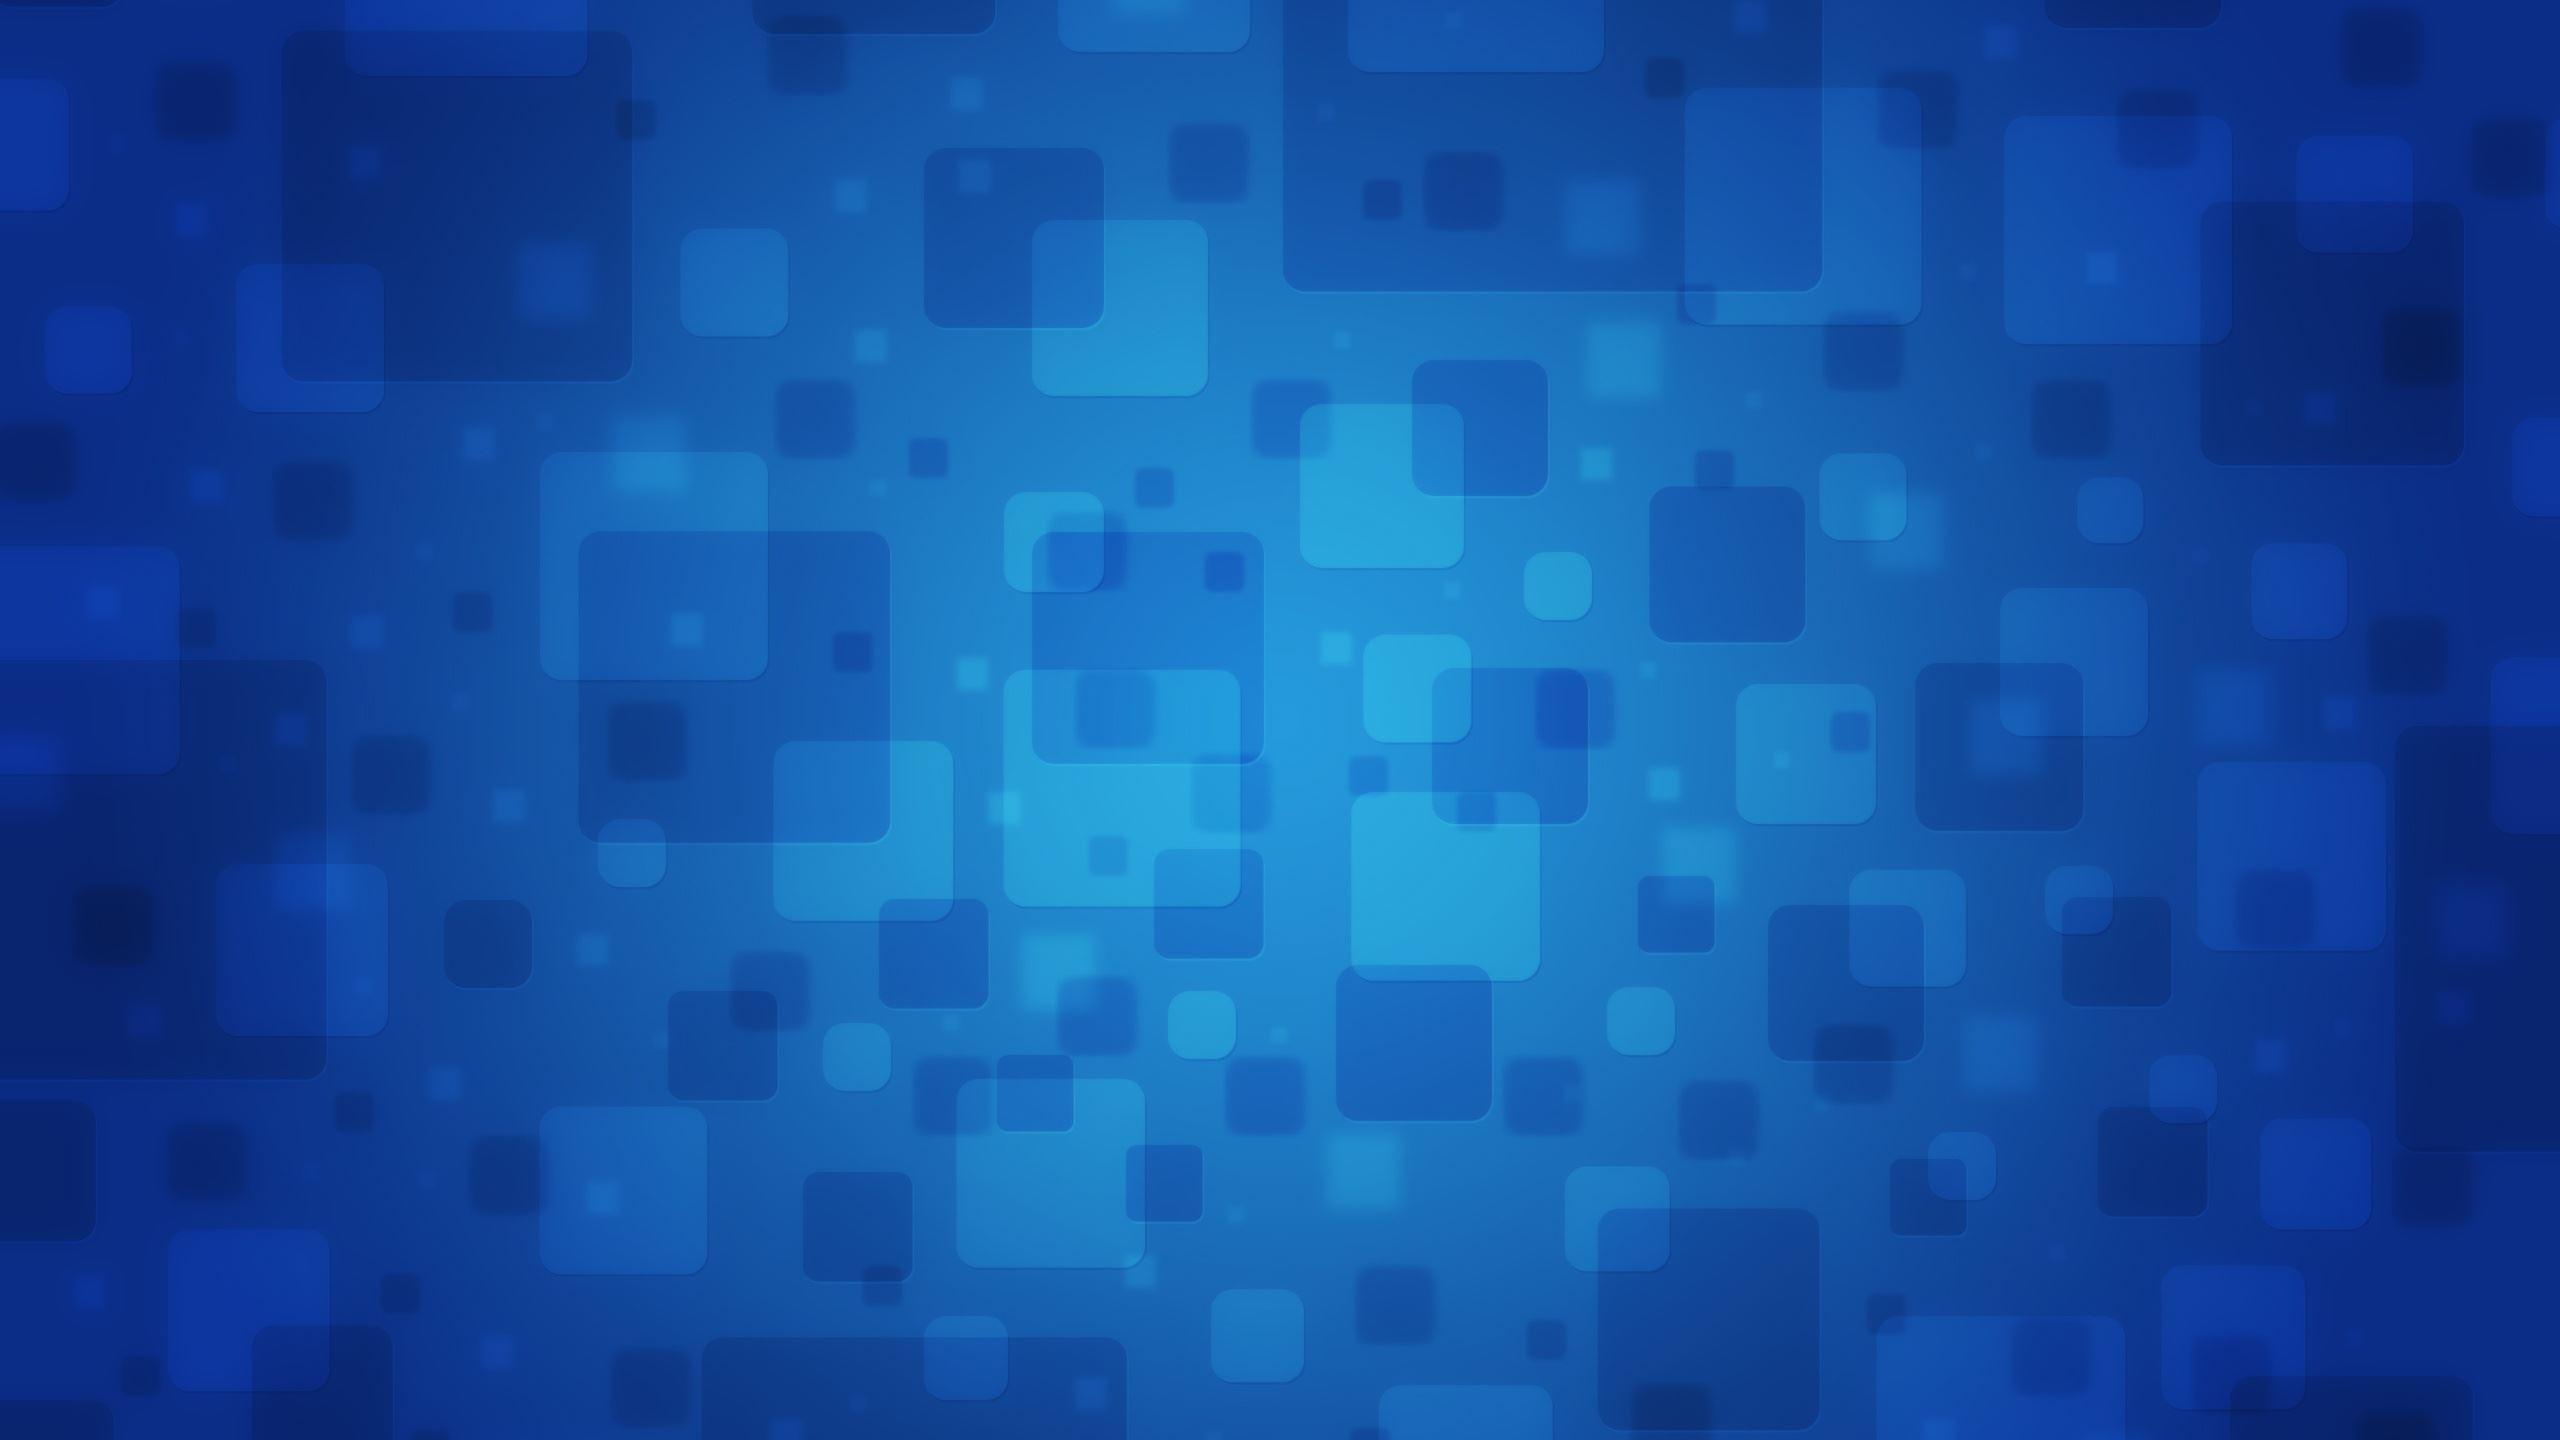 Abstract Squares In Blue HD Desktop Wallpaper Background